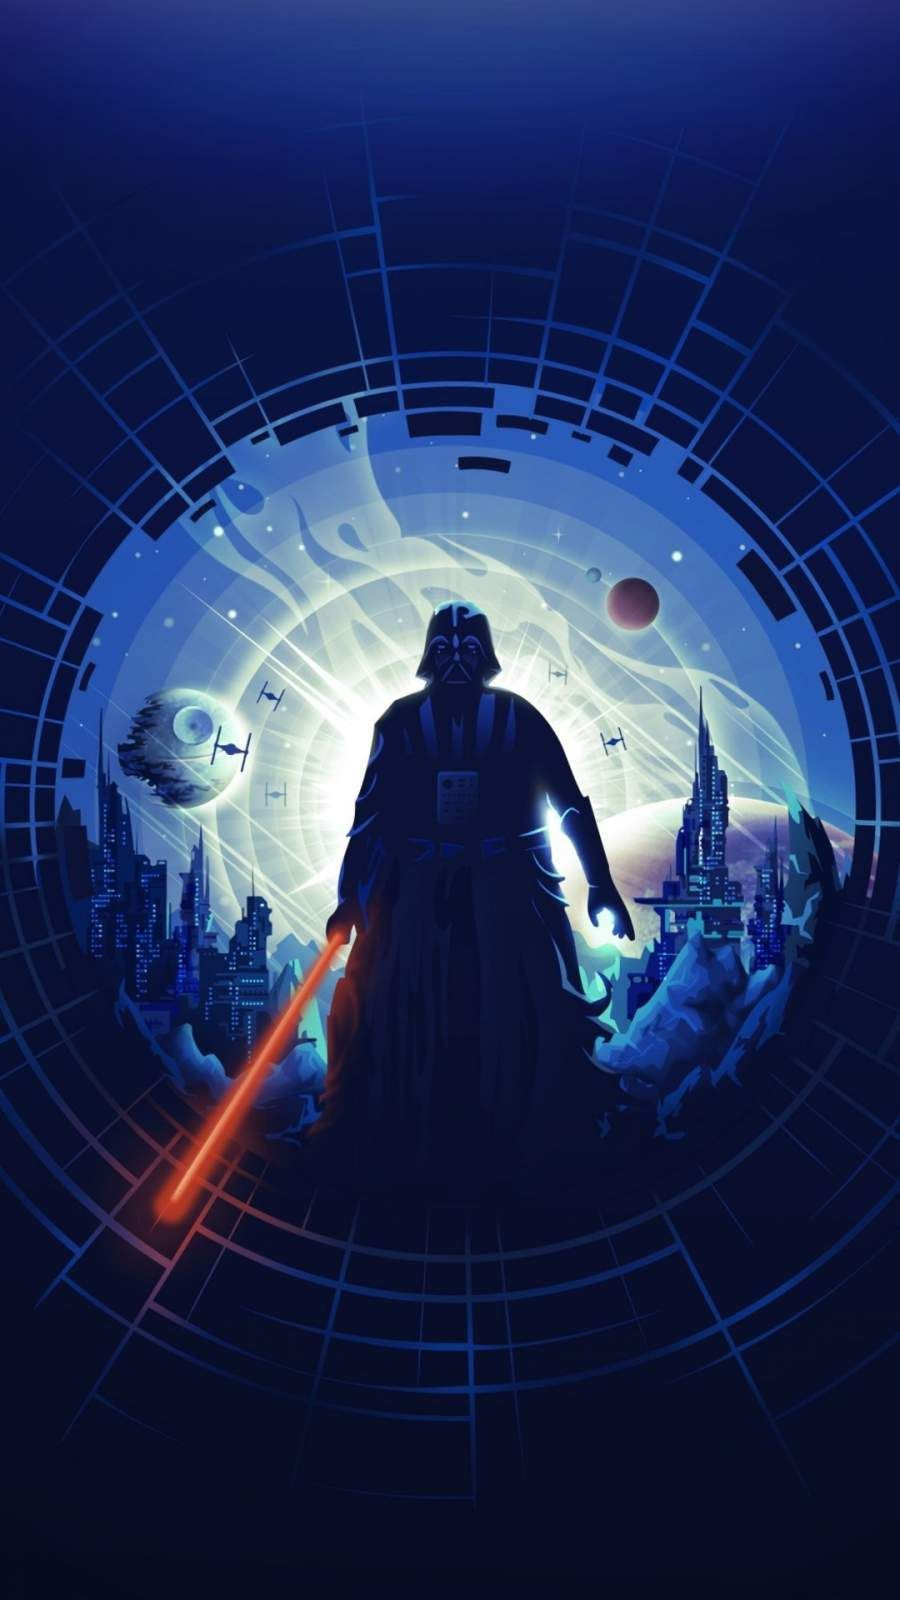 Darth Vader Star Wars Art Iphone Wallpaper Full Hd 4k Darth Vader Wallpaper Star Wars Wallpaper Iphone Darth Vader Wallpaper Iphone